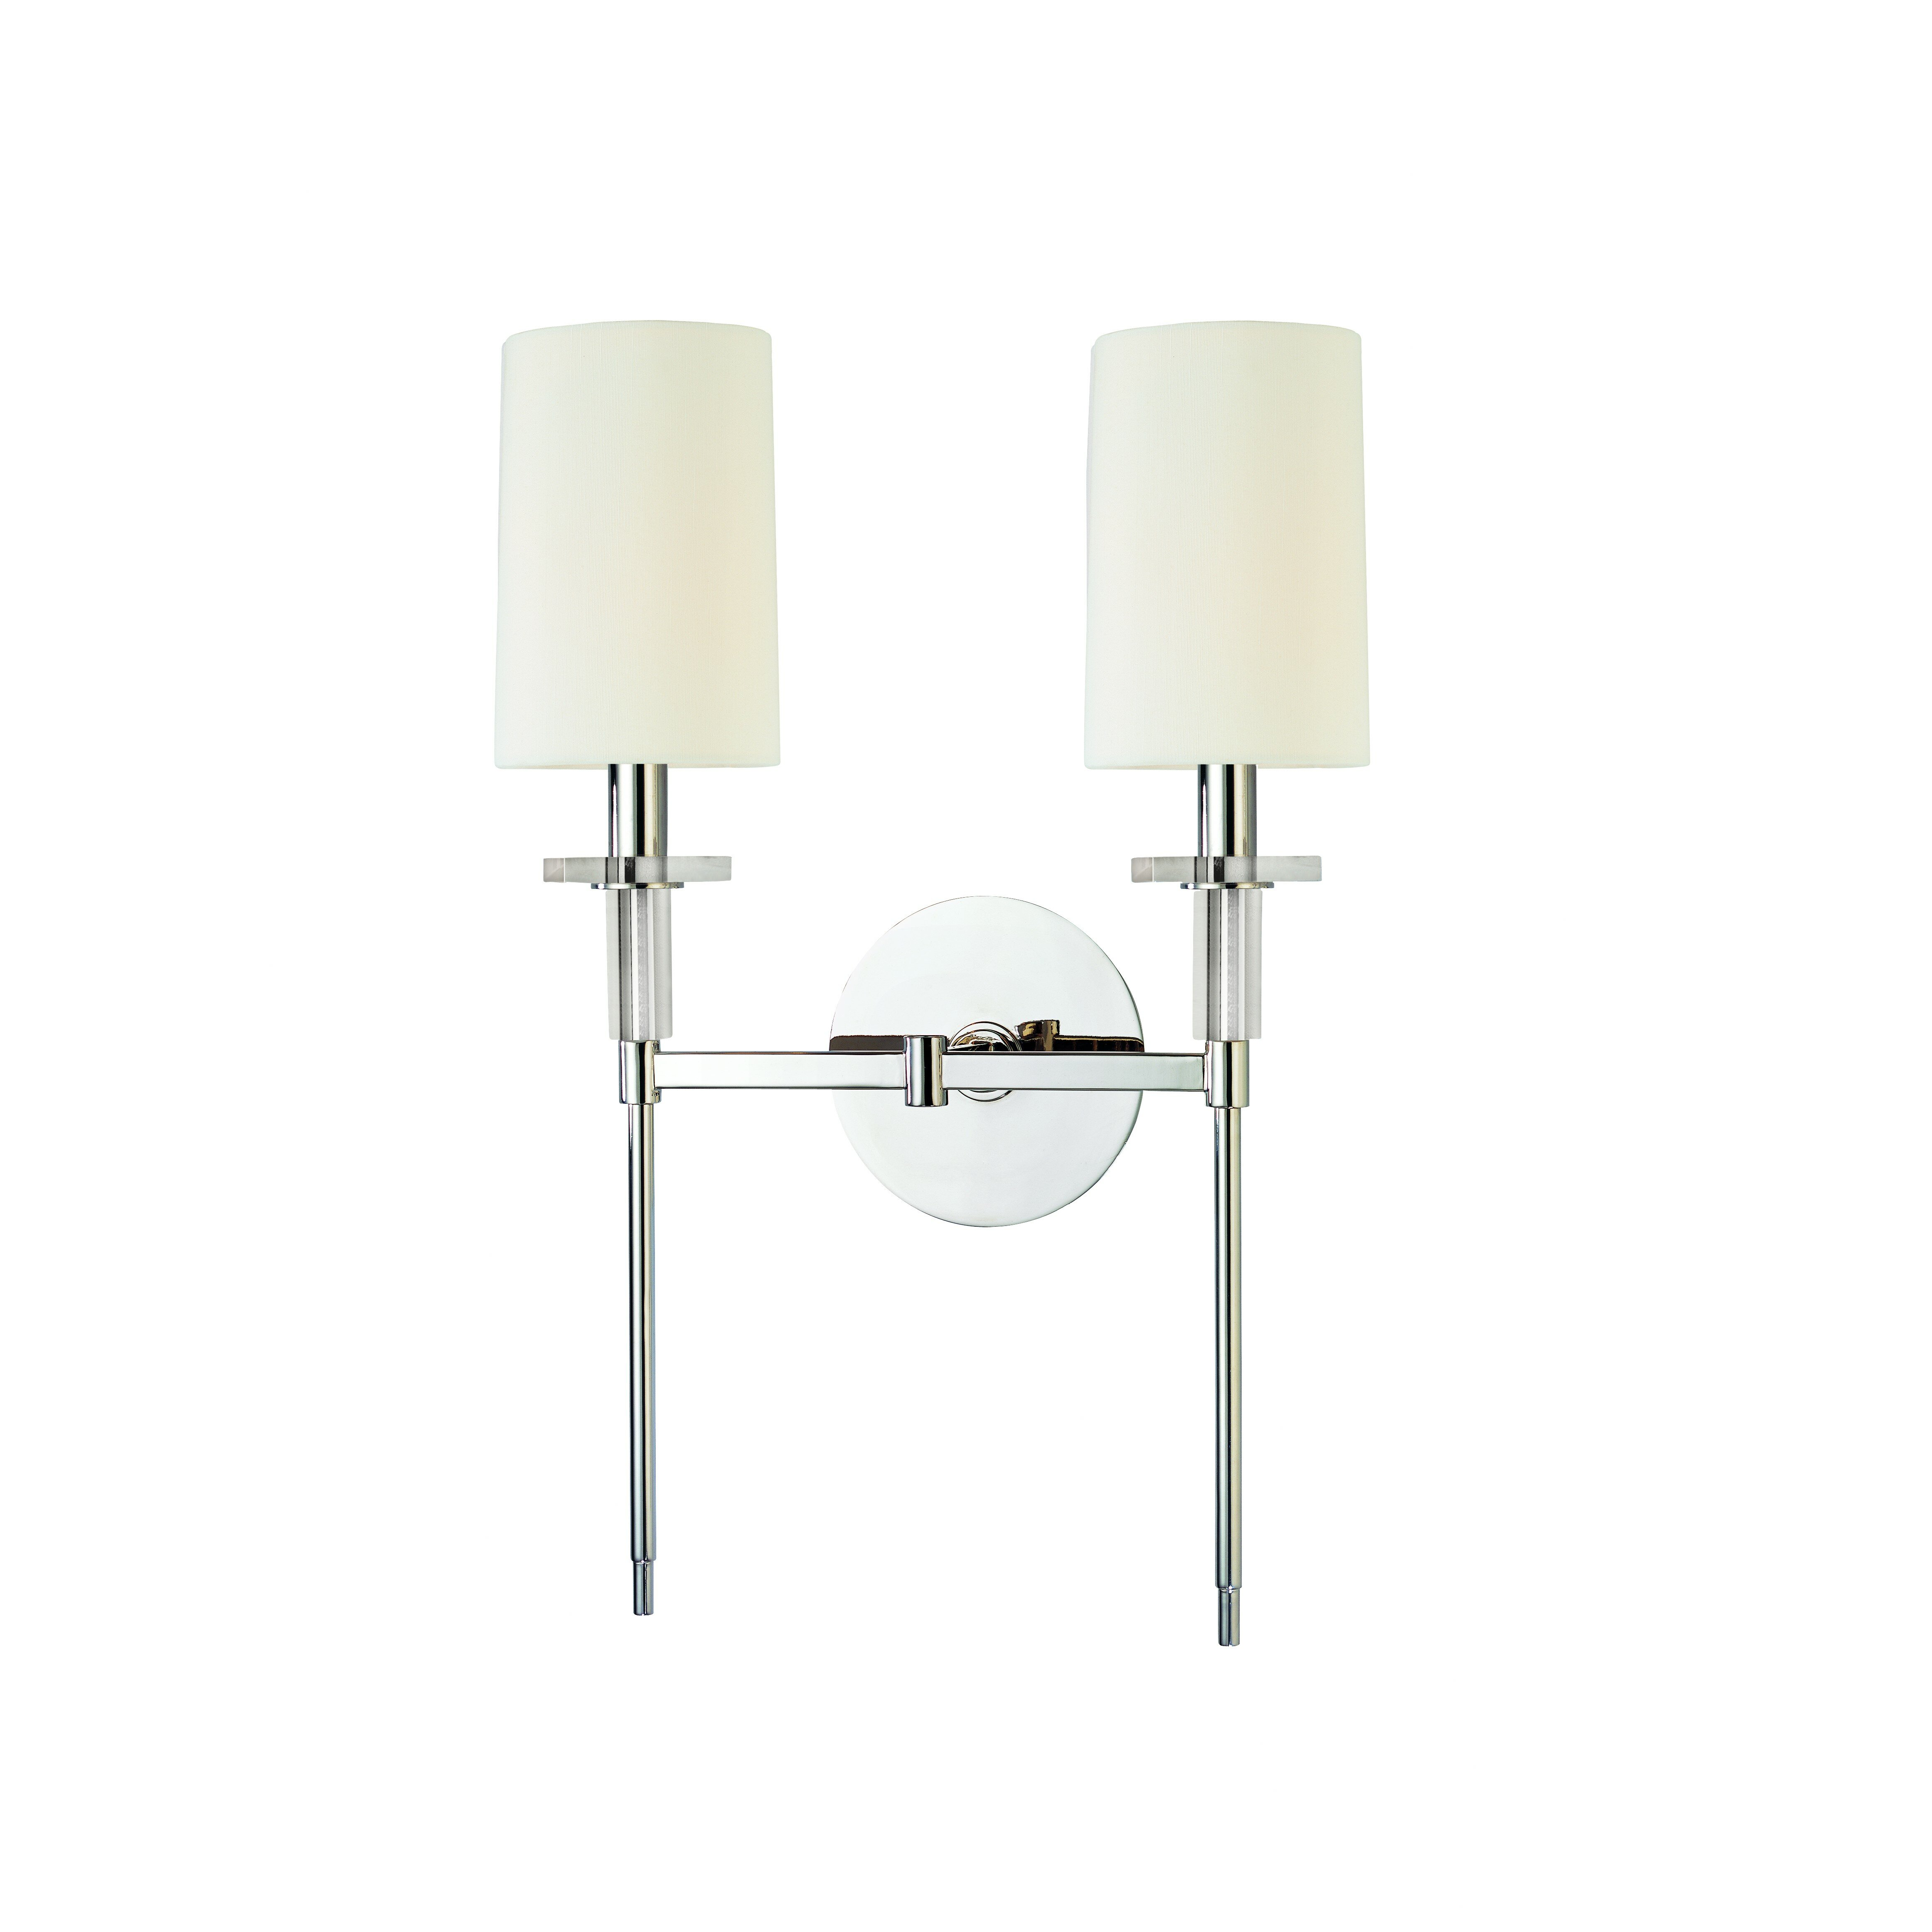 Where Is Hudson Valley Lighting Made: Hudson Valley Lighting Amherst 2 Light Candle Sconce